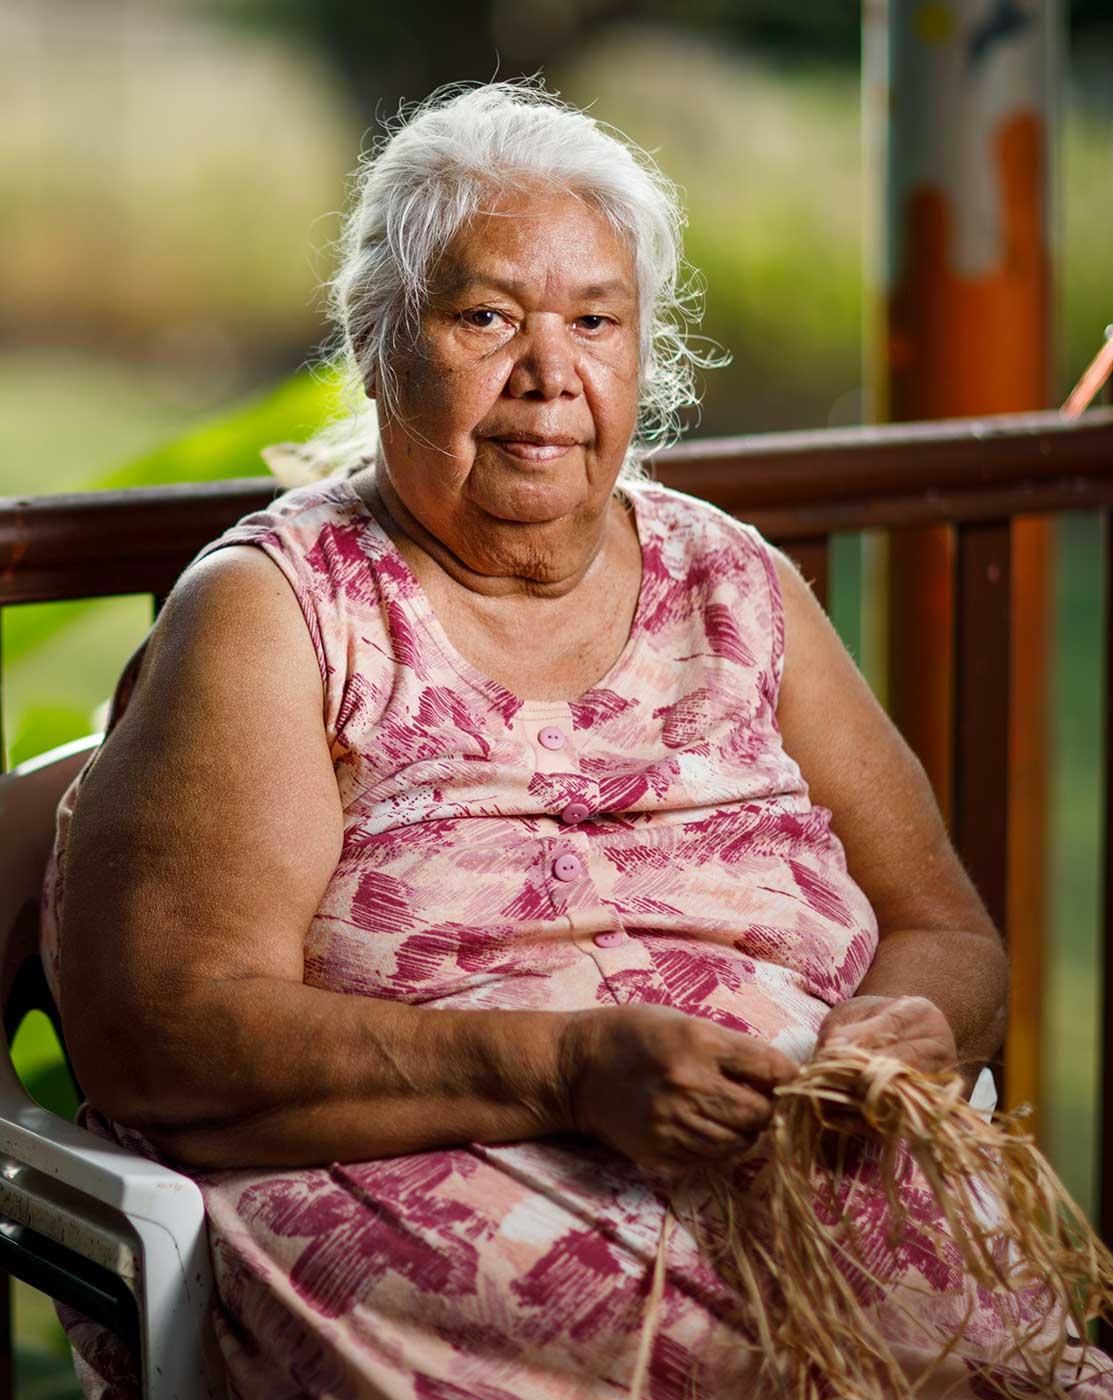 Colour photograph of an elderly woman sitting and weaving with natural fibres. - click to view larger image